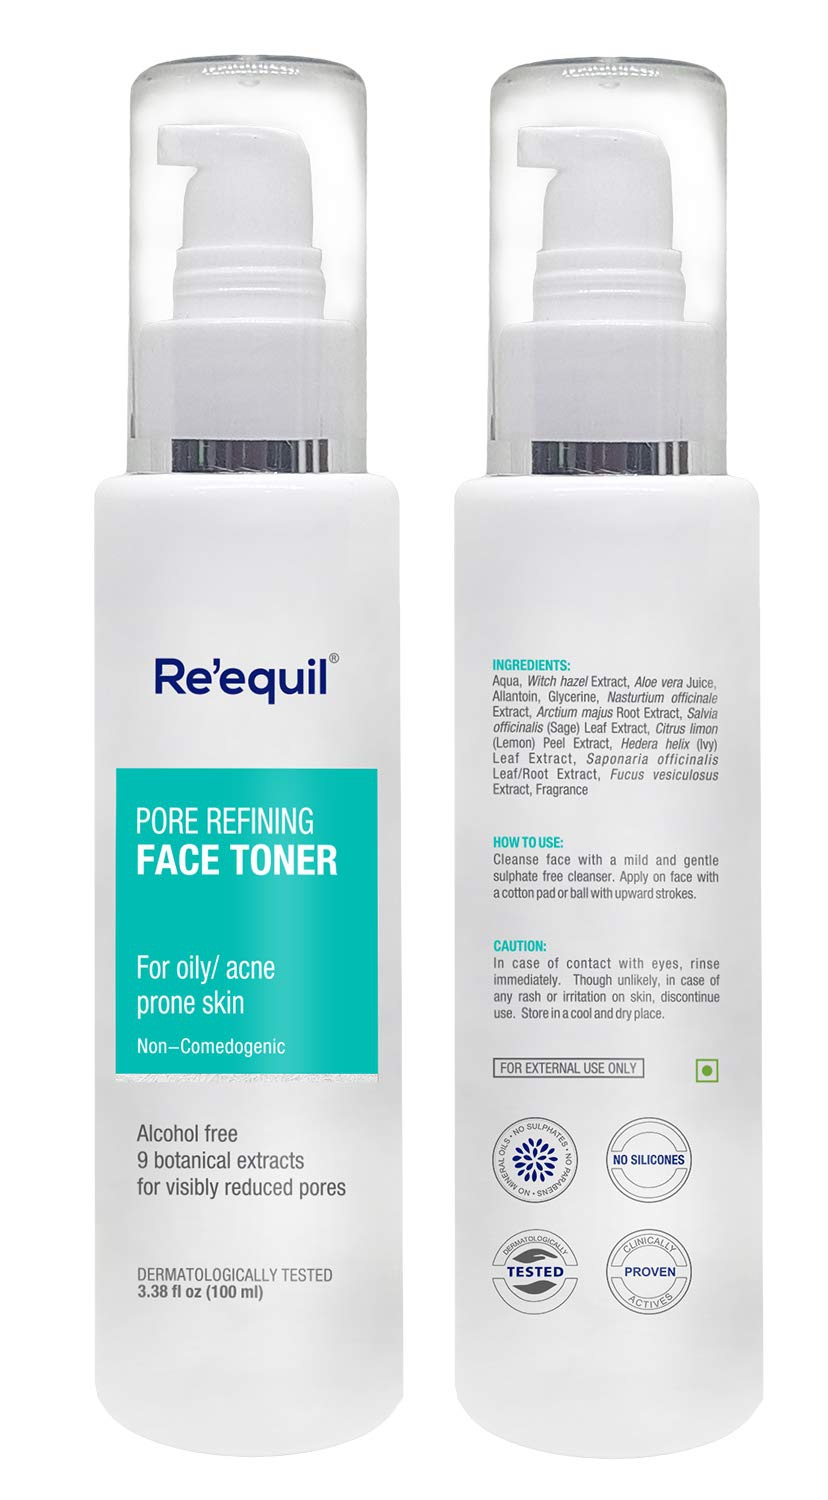 Re'equil Re'equil Pore Refining Face Toner